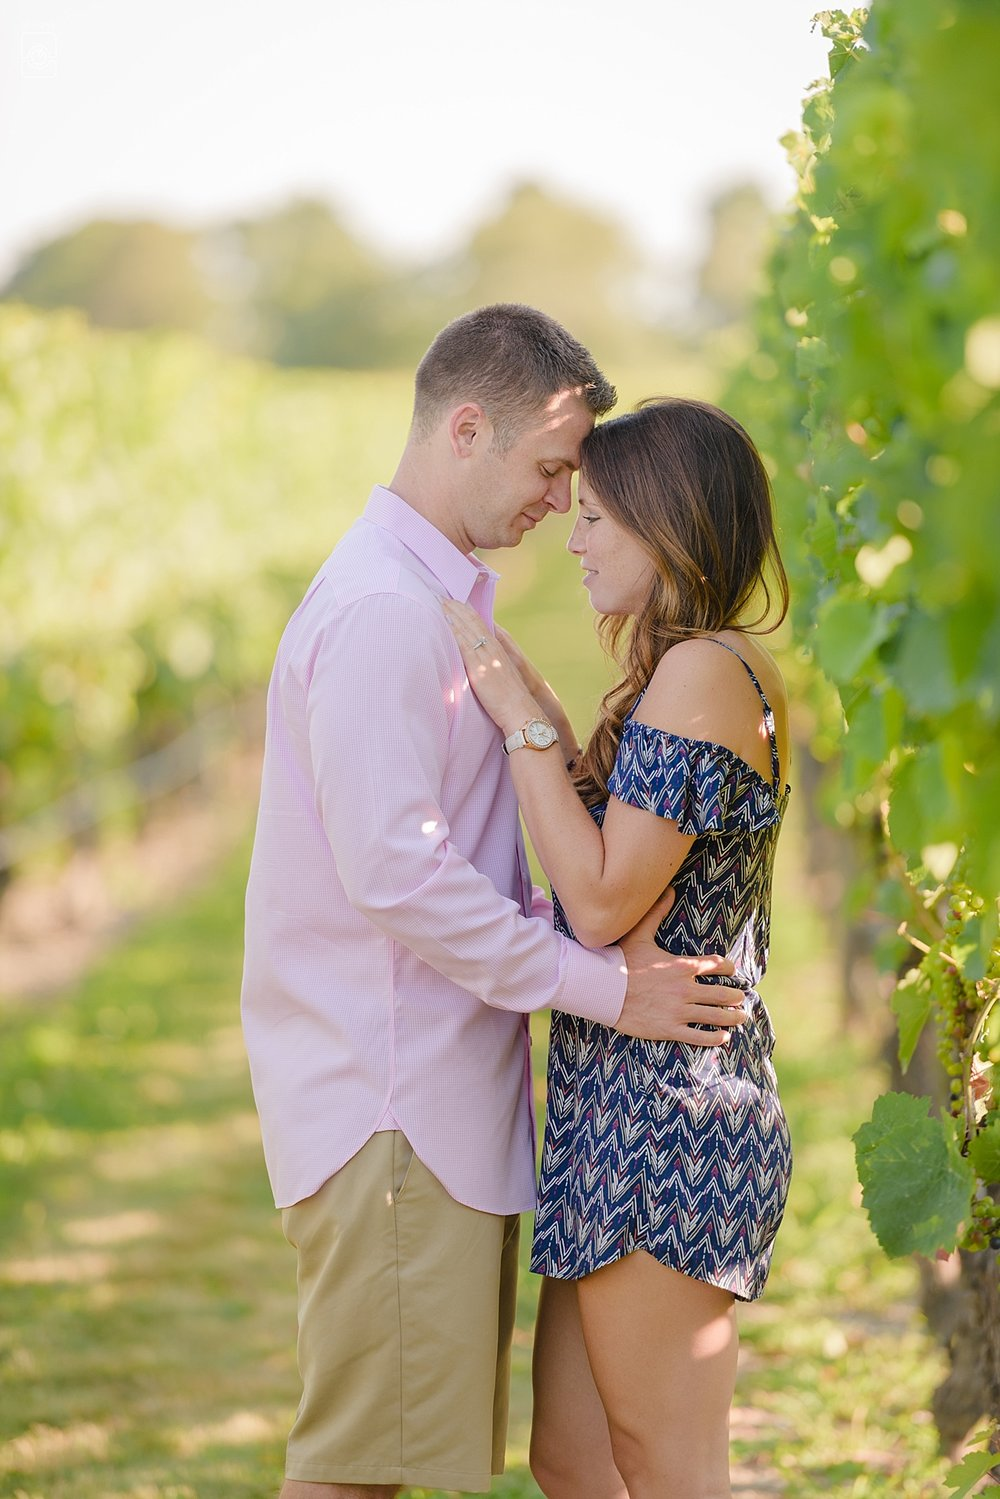 028G+KHBP_7143Proposal_NewportVineyards_RI©HilaryBPhotography_WEB.jpg